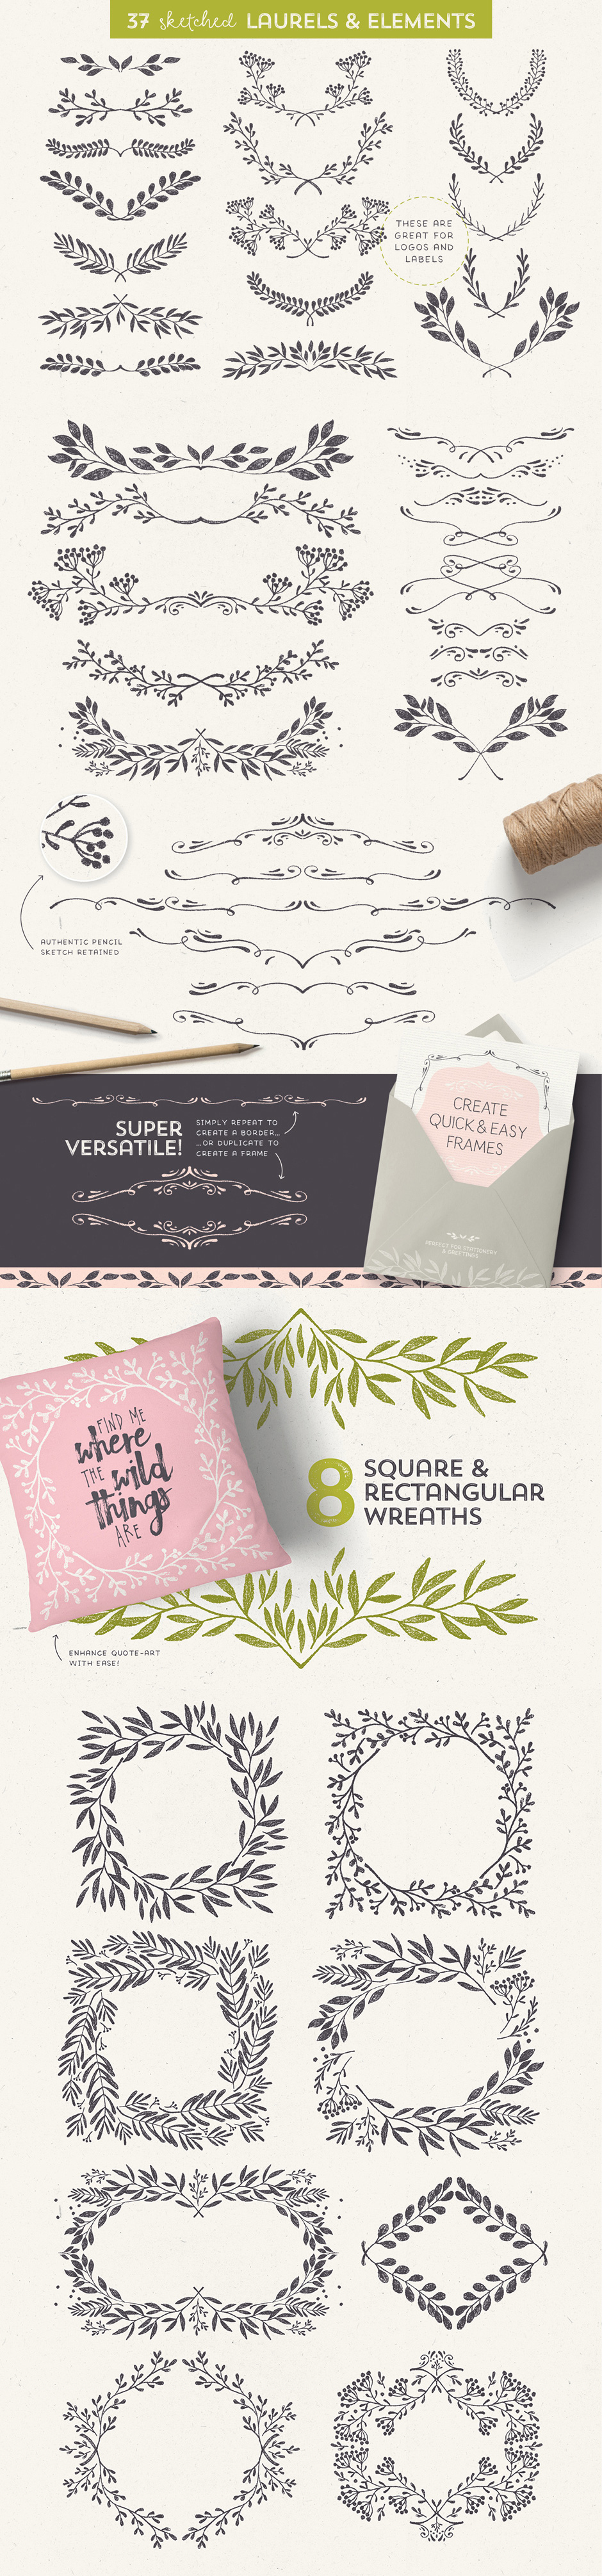 The Premium Quality Vectors Bundle